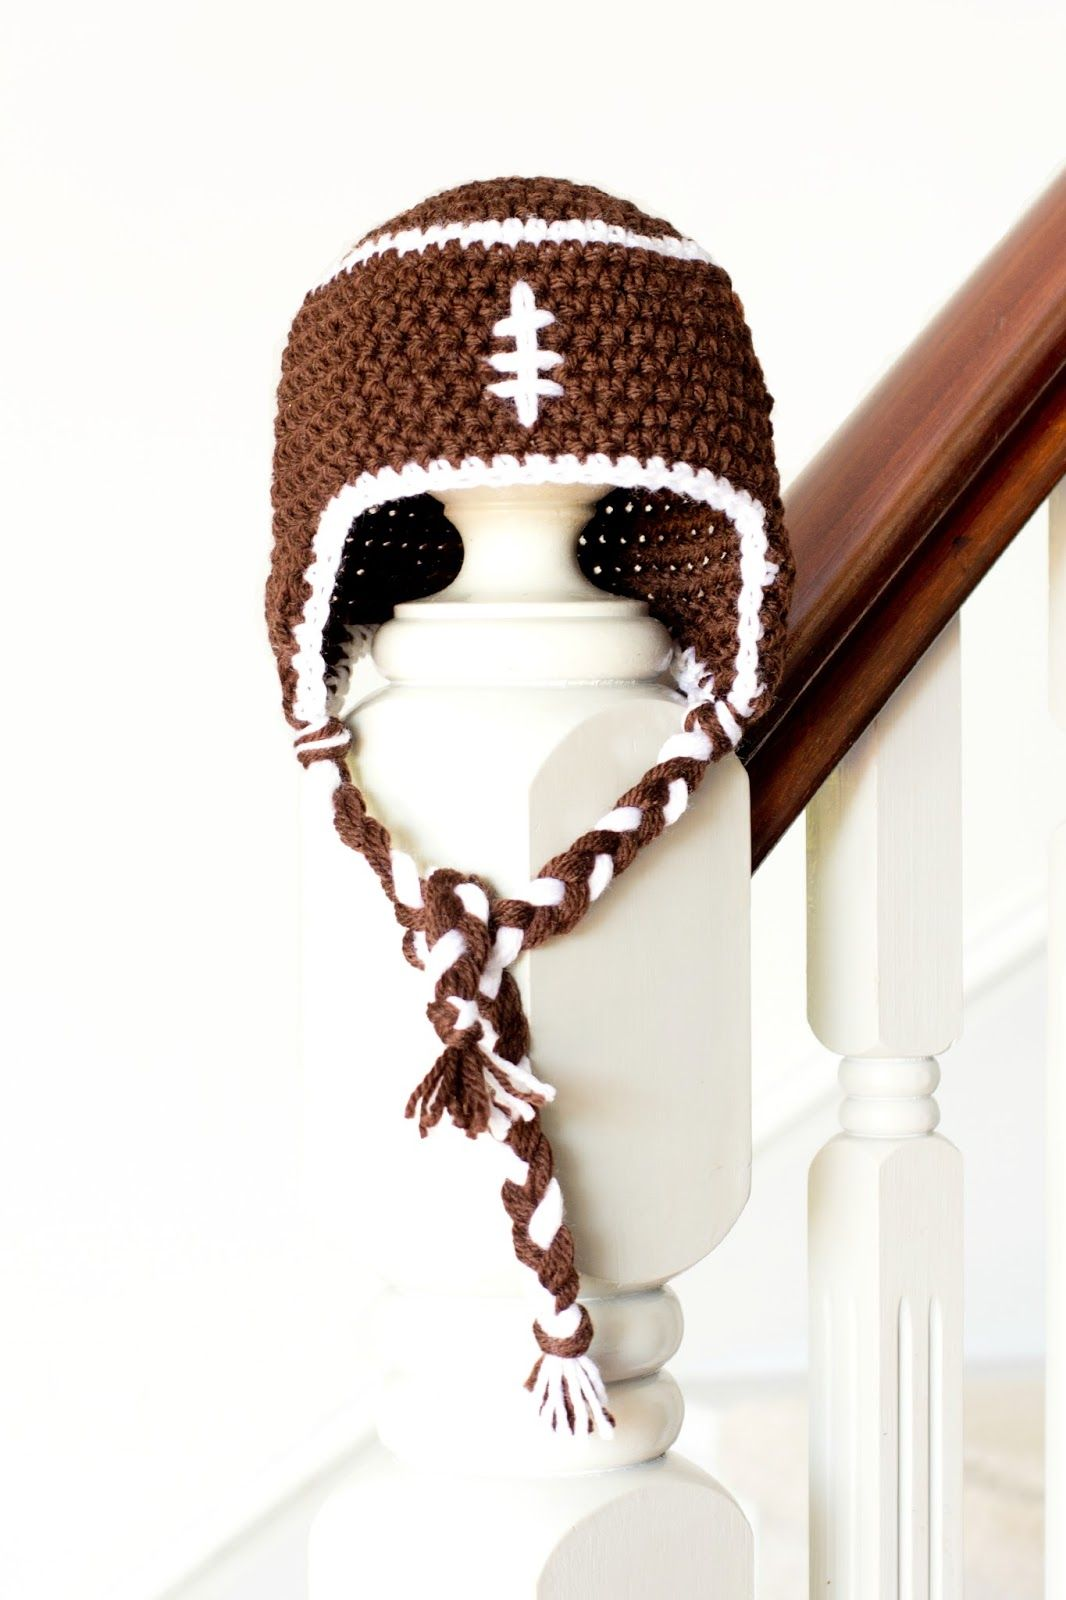 Baby Football Earflap Hat Crochet Pattern | Sombreros de ganchillo ...